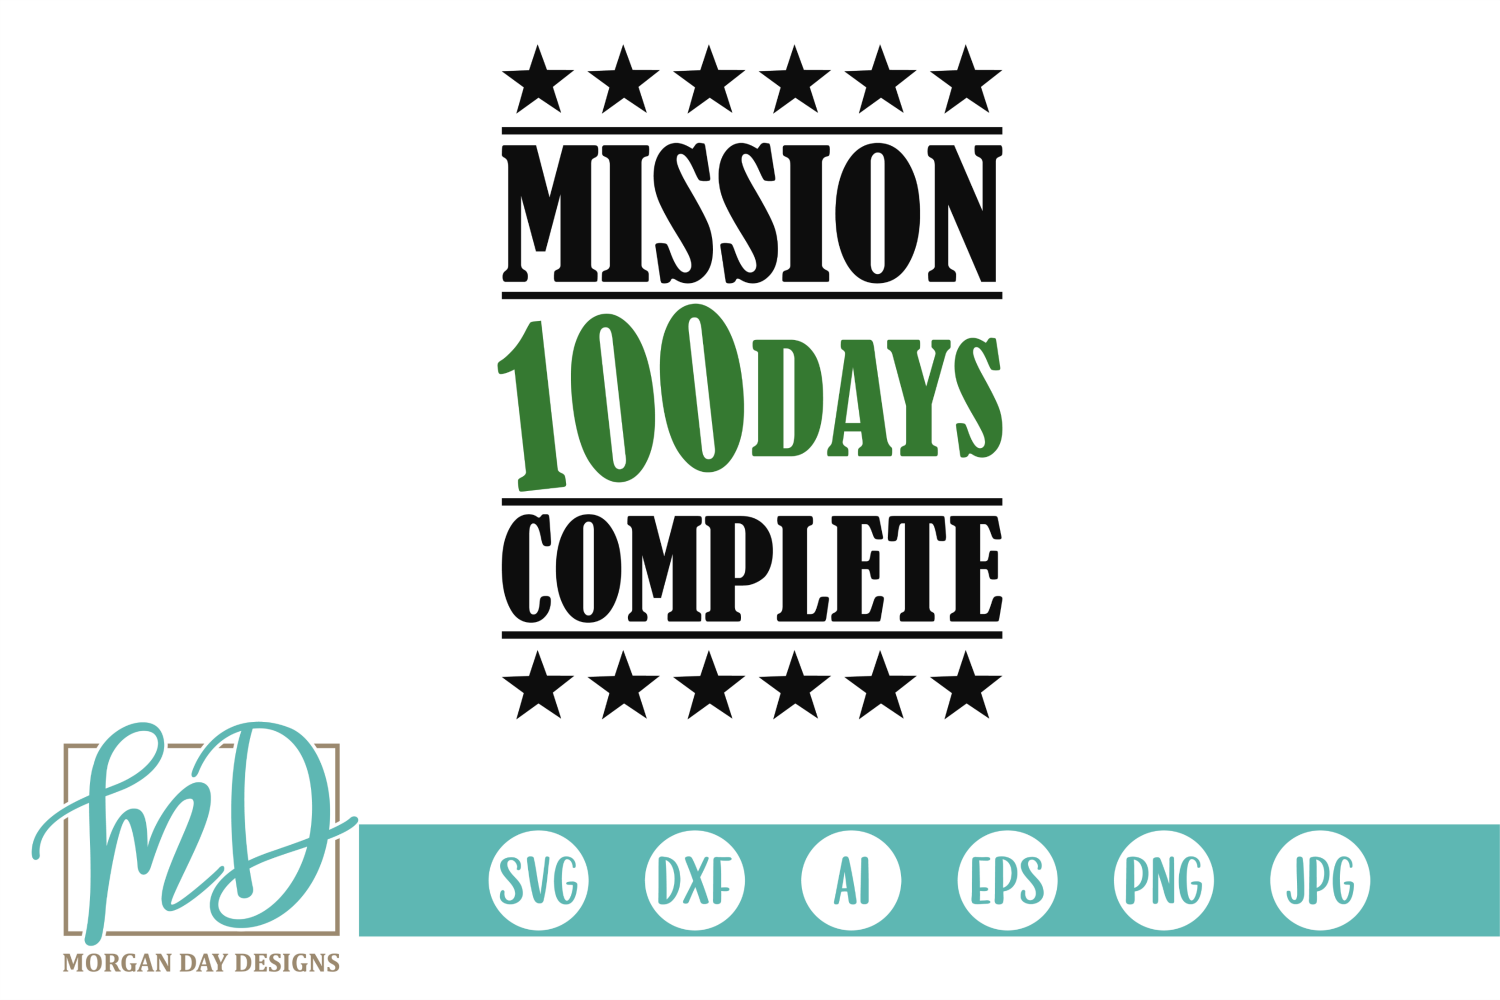 Download Free Mission Complete 100 Days Graphic By Morgan Day Designs for Cricut Explore, Silhouette and other cutting machines.